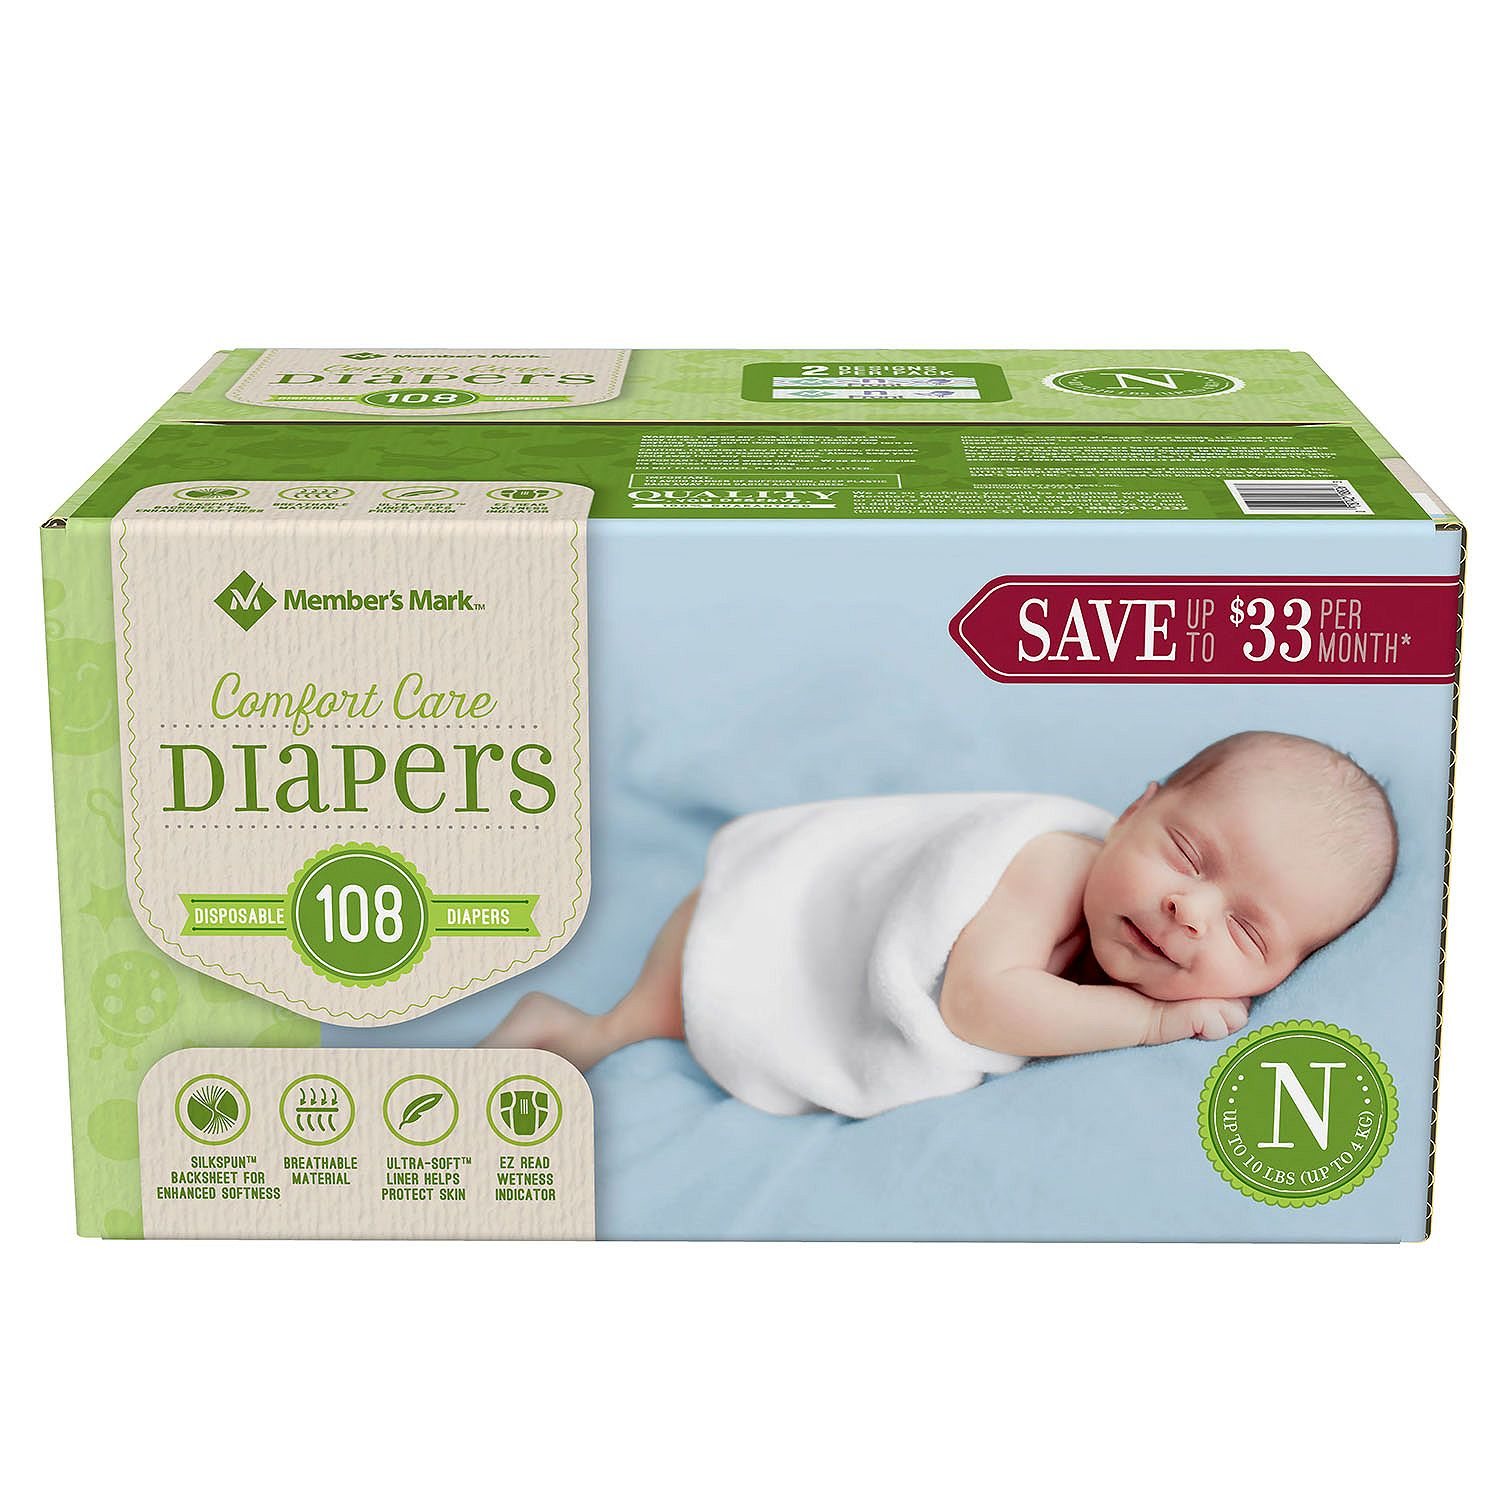 Member's Mark Comfort Care Baby Diapers, Newborn Up to 10 lbs. (108 ct.) Size not found - Bulk Qty, Free Shipping - Comfortable, Soft, No leaking & Good nite Diapers